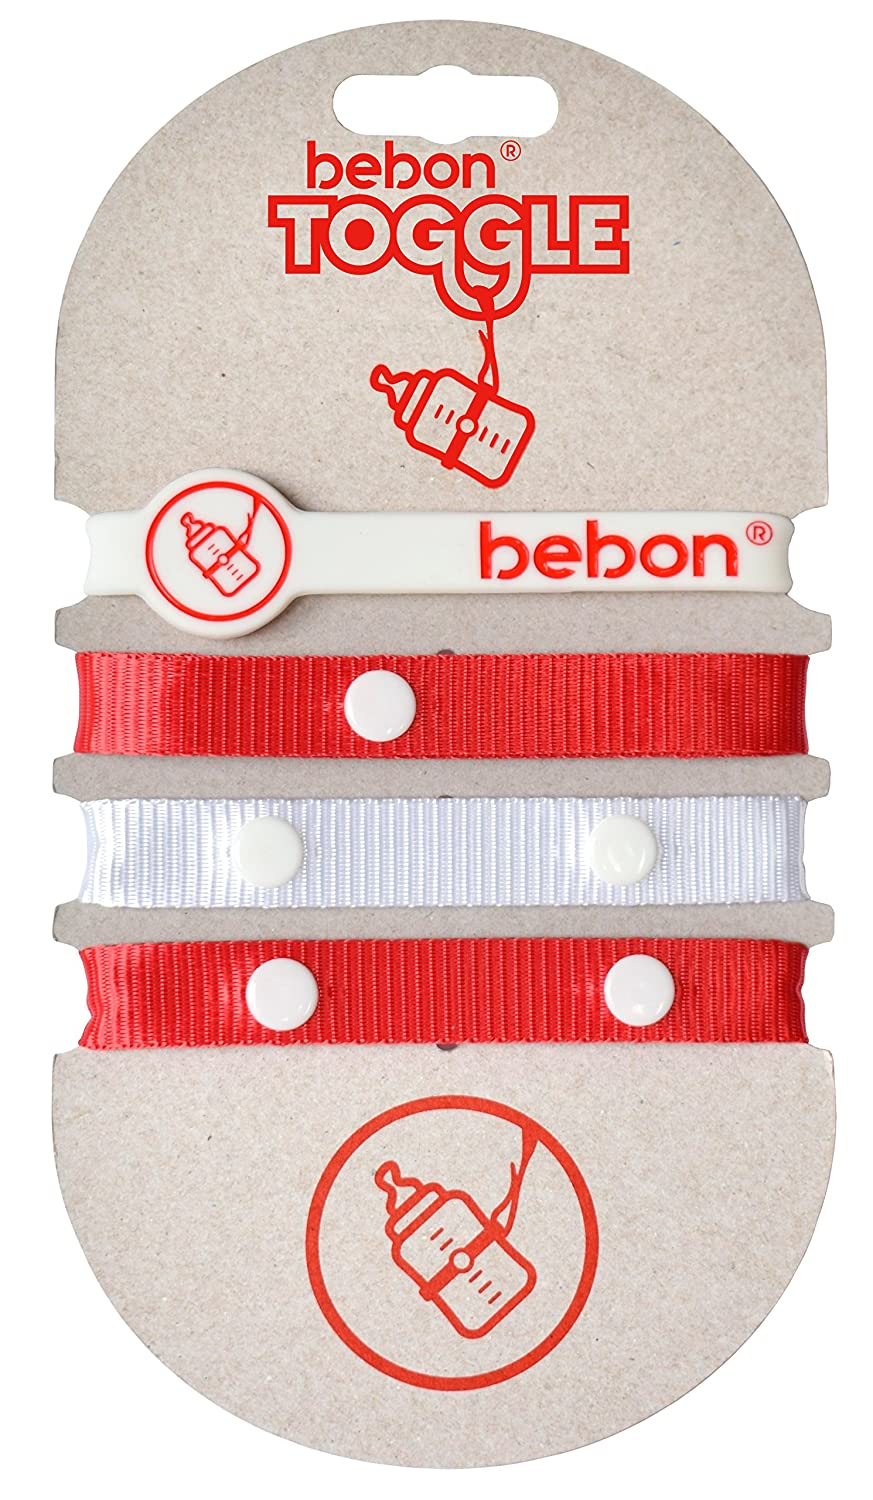 Toggle Baby Bottle Holder - Toy Strap, Leash for Stroller, Car Seat, High Chair, Sippy Cup, Teether (red/White) bebon